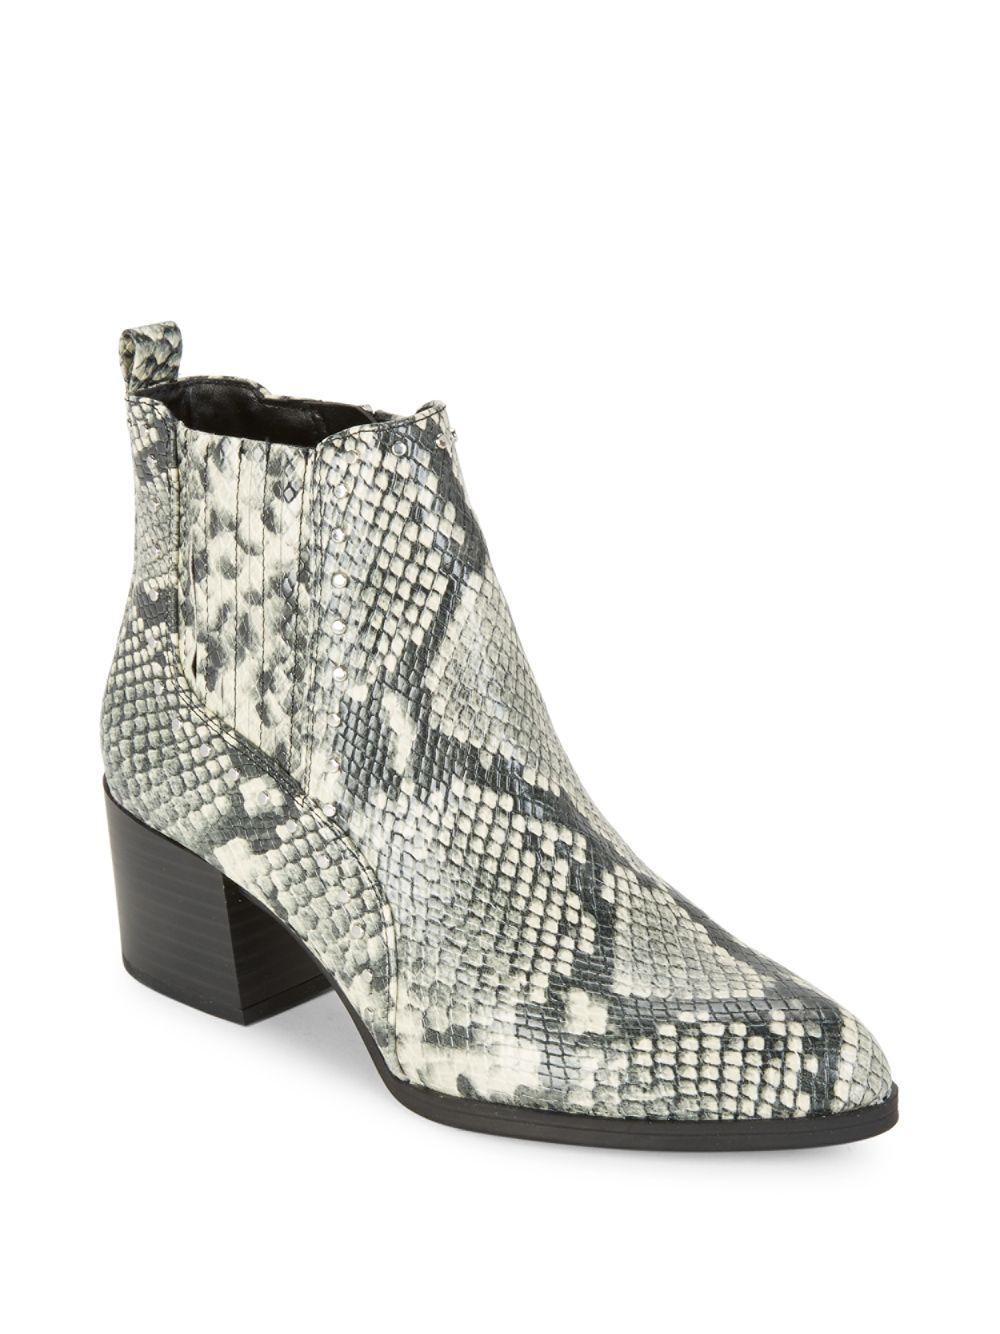 313280a5f7dc Circus by Sam Edelman Snakeskin-embossed Booties - Lyst